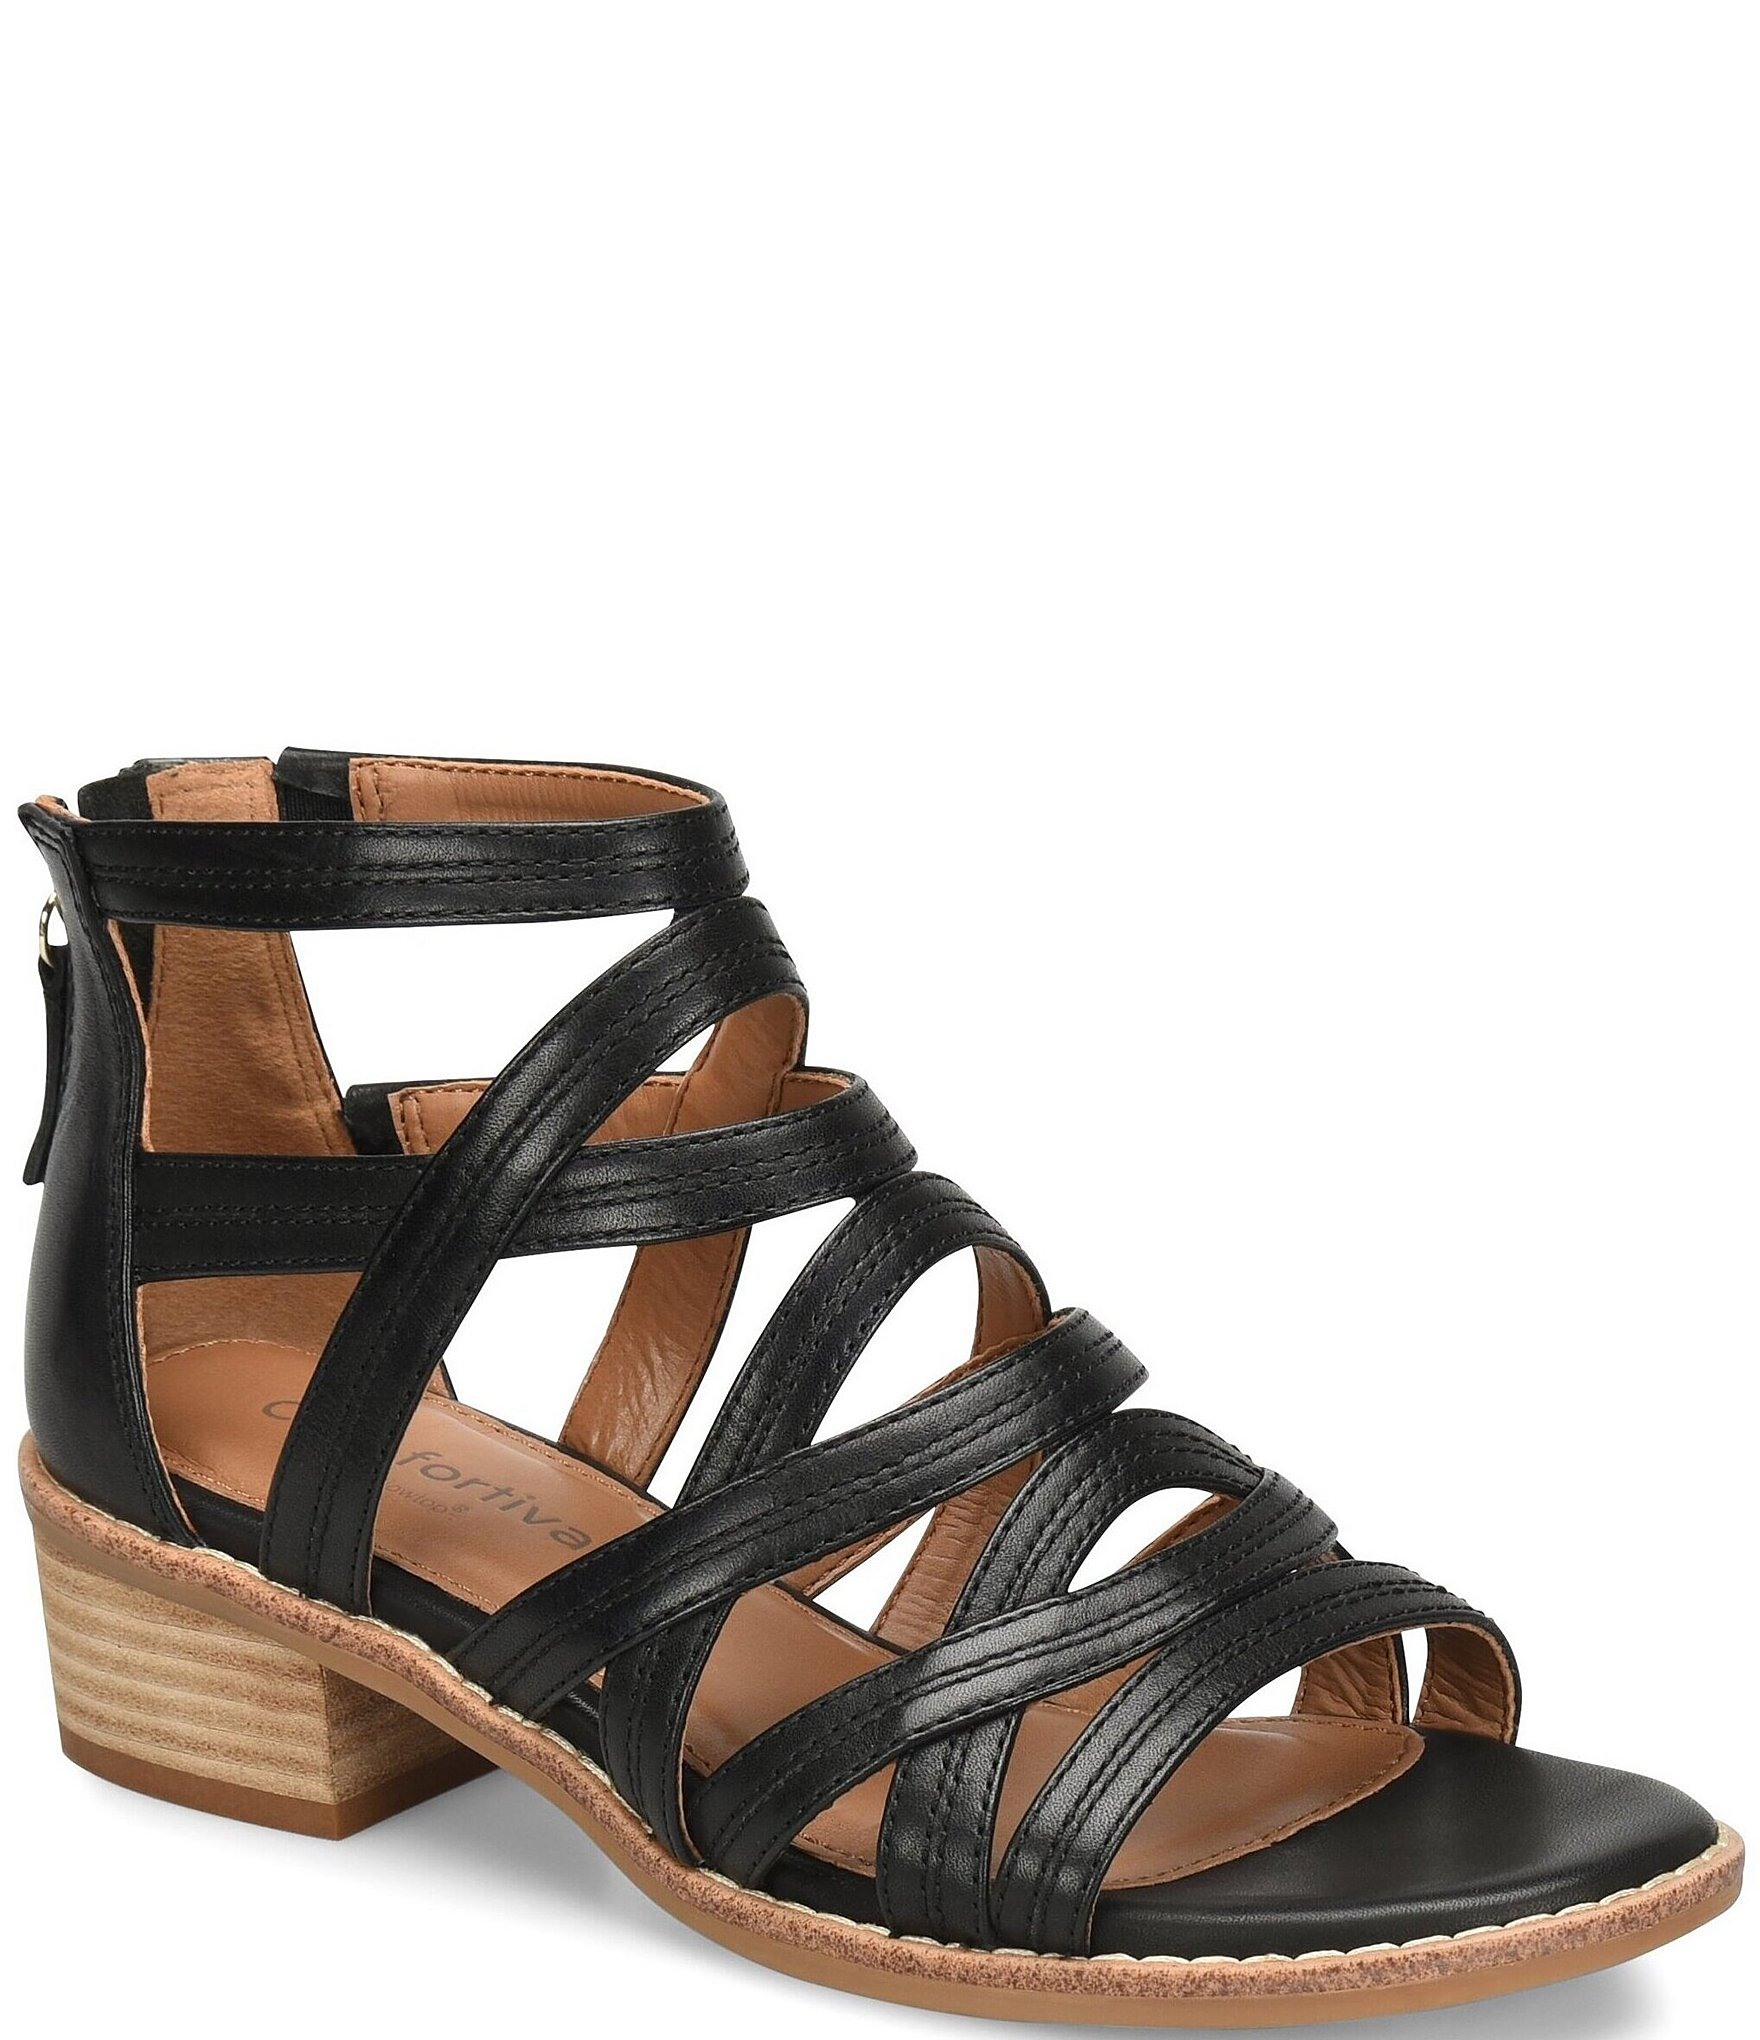 806d5a94f2d5 Comfortiva Betha Leather Gladiator Sandals